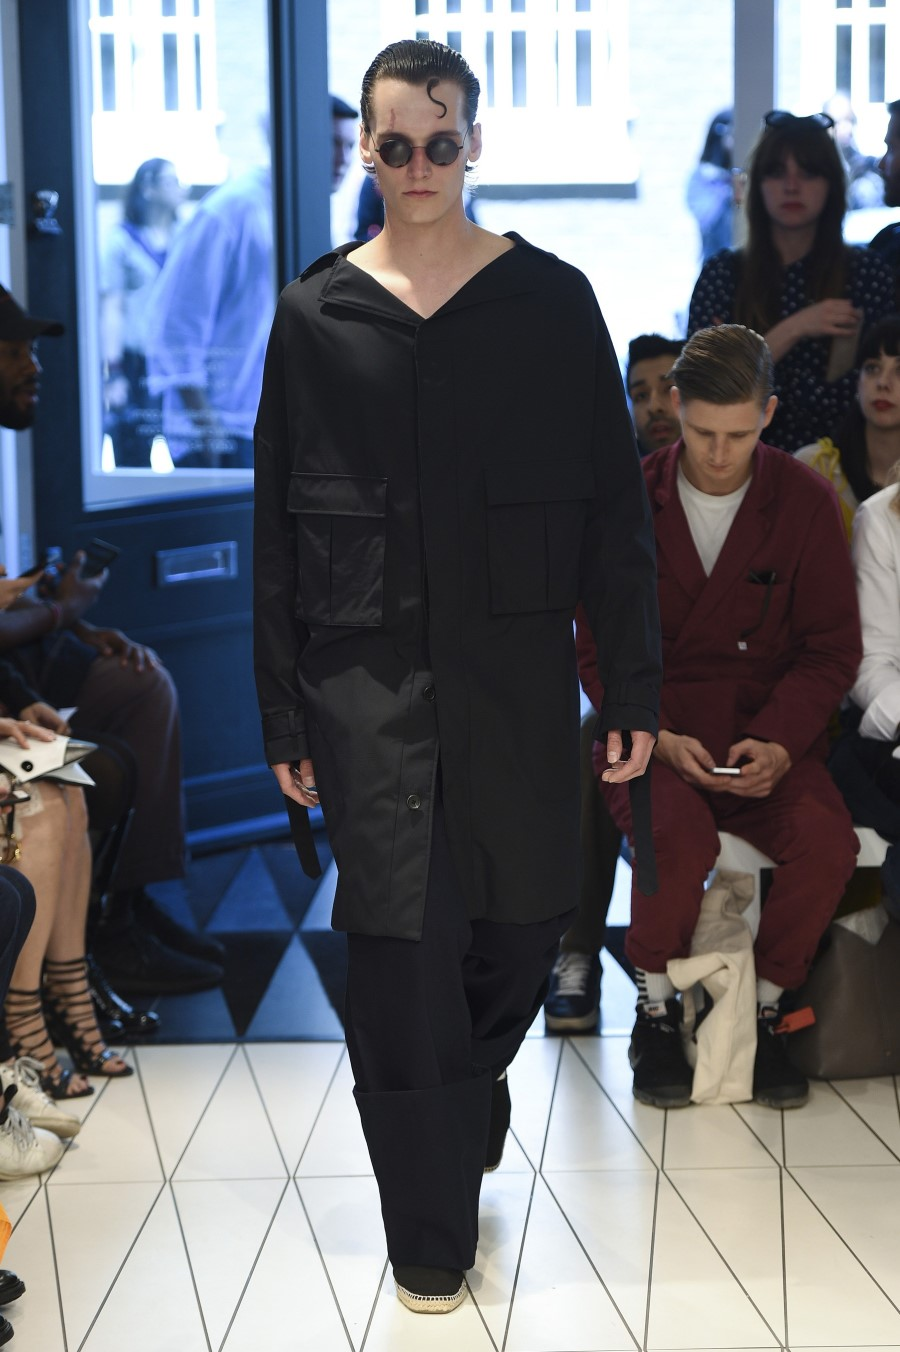 Chalayan Printemps/Été 2019 – London Fashion Week Men's